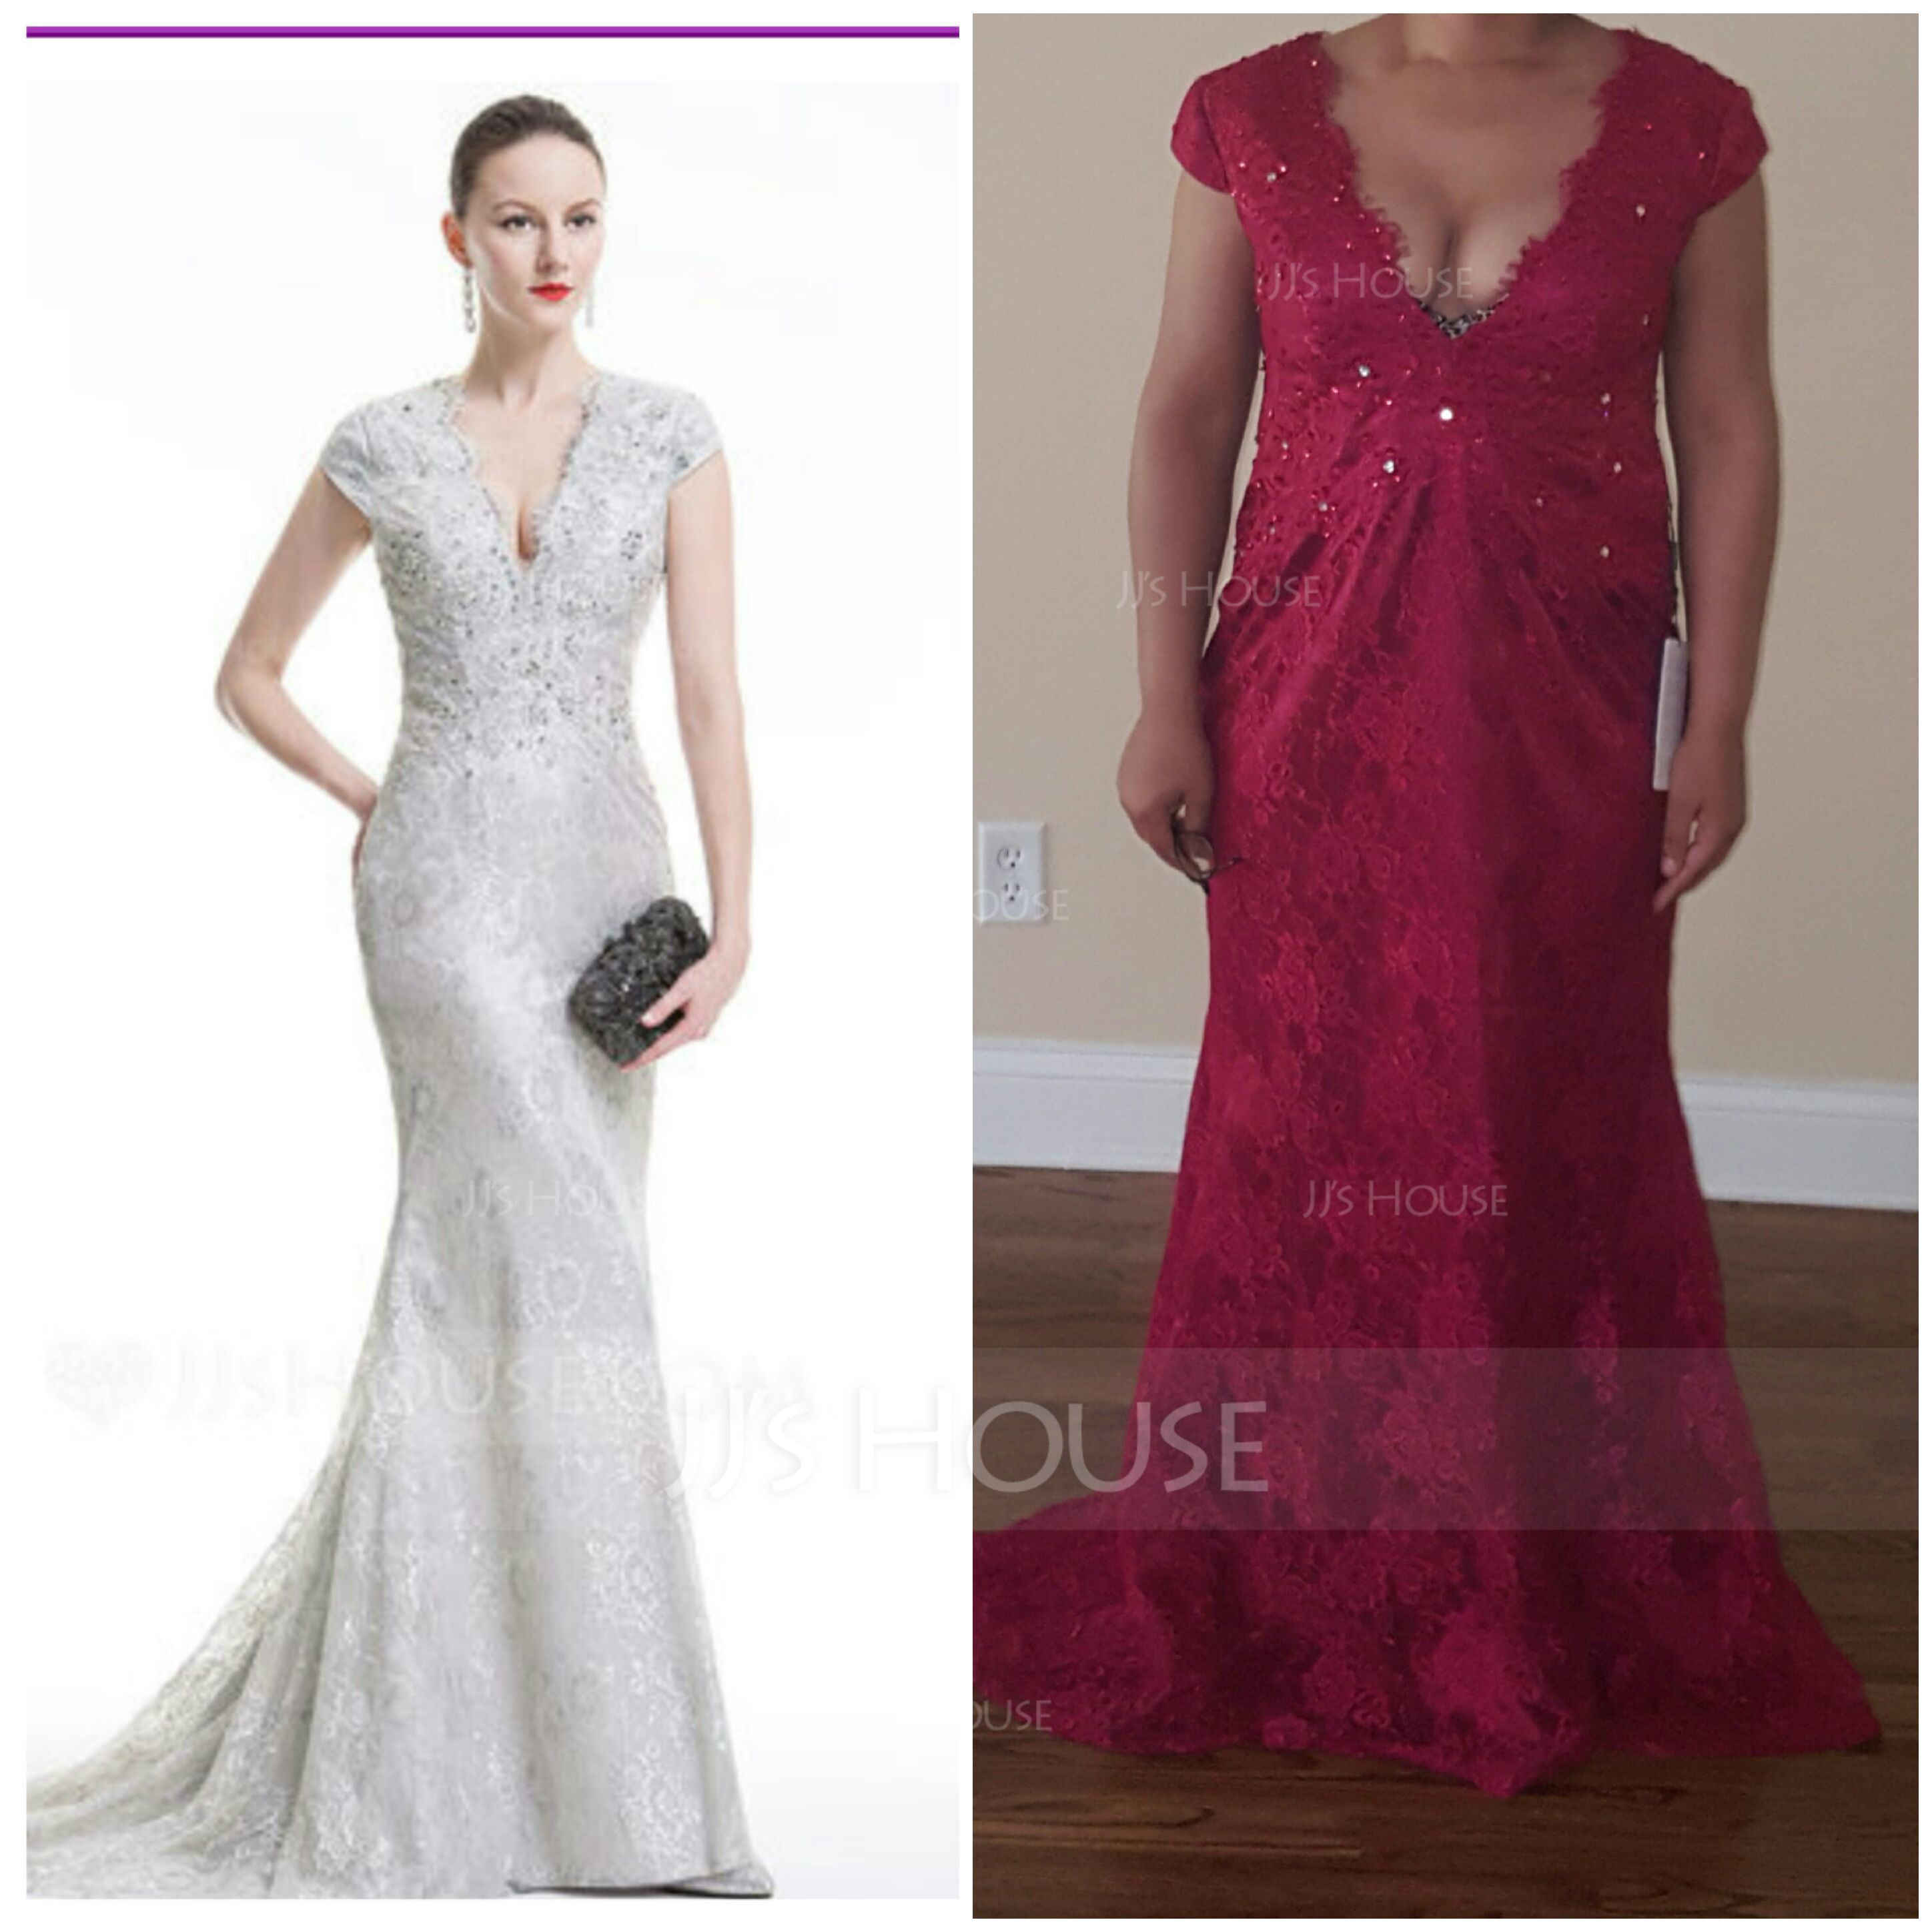 Trumpet/Mermaid V-neck Sweep Train Lace Evening Dress With Beading Sequins (017075014)